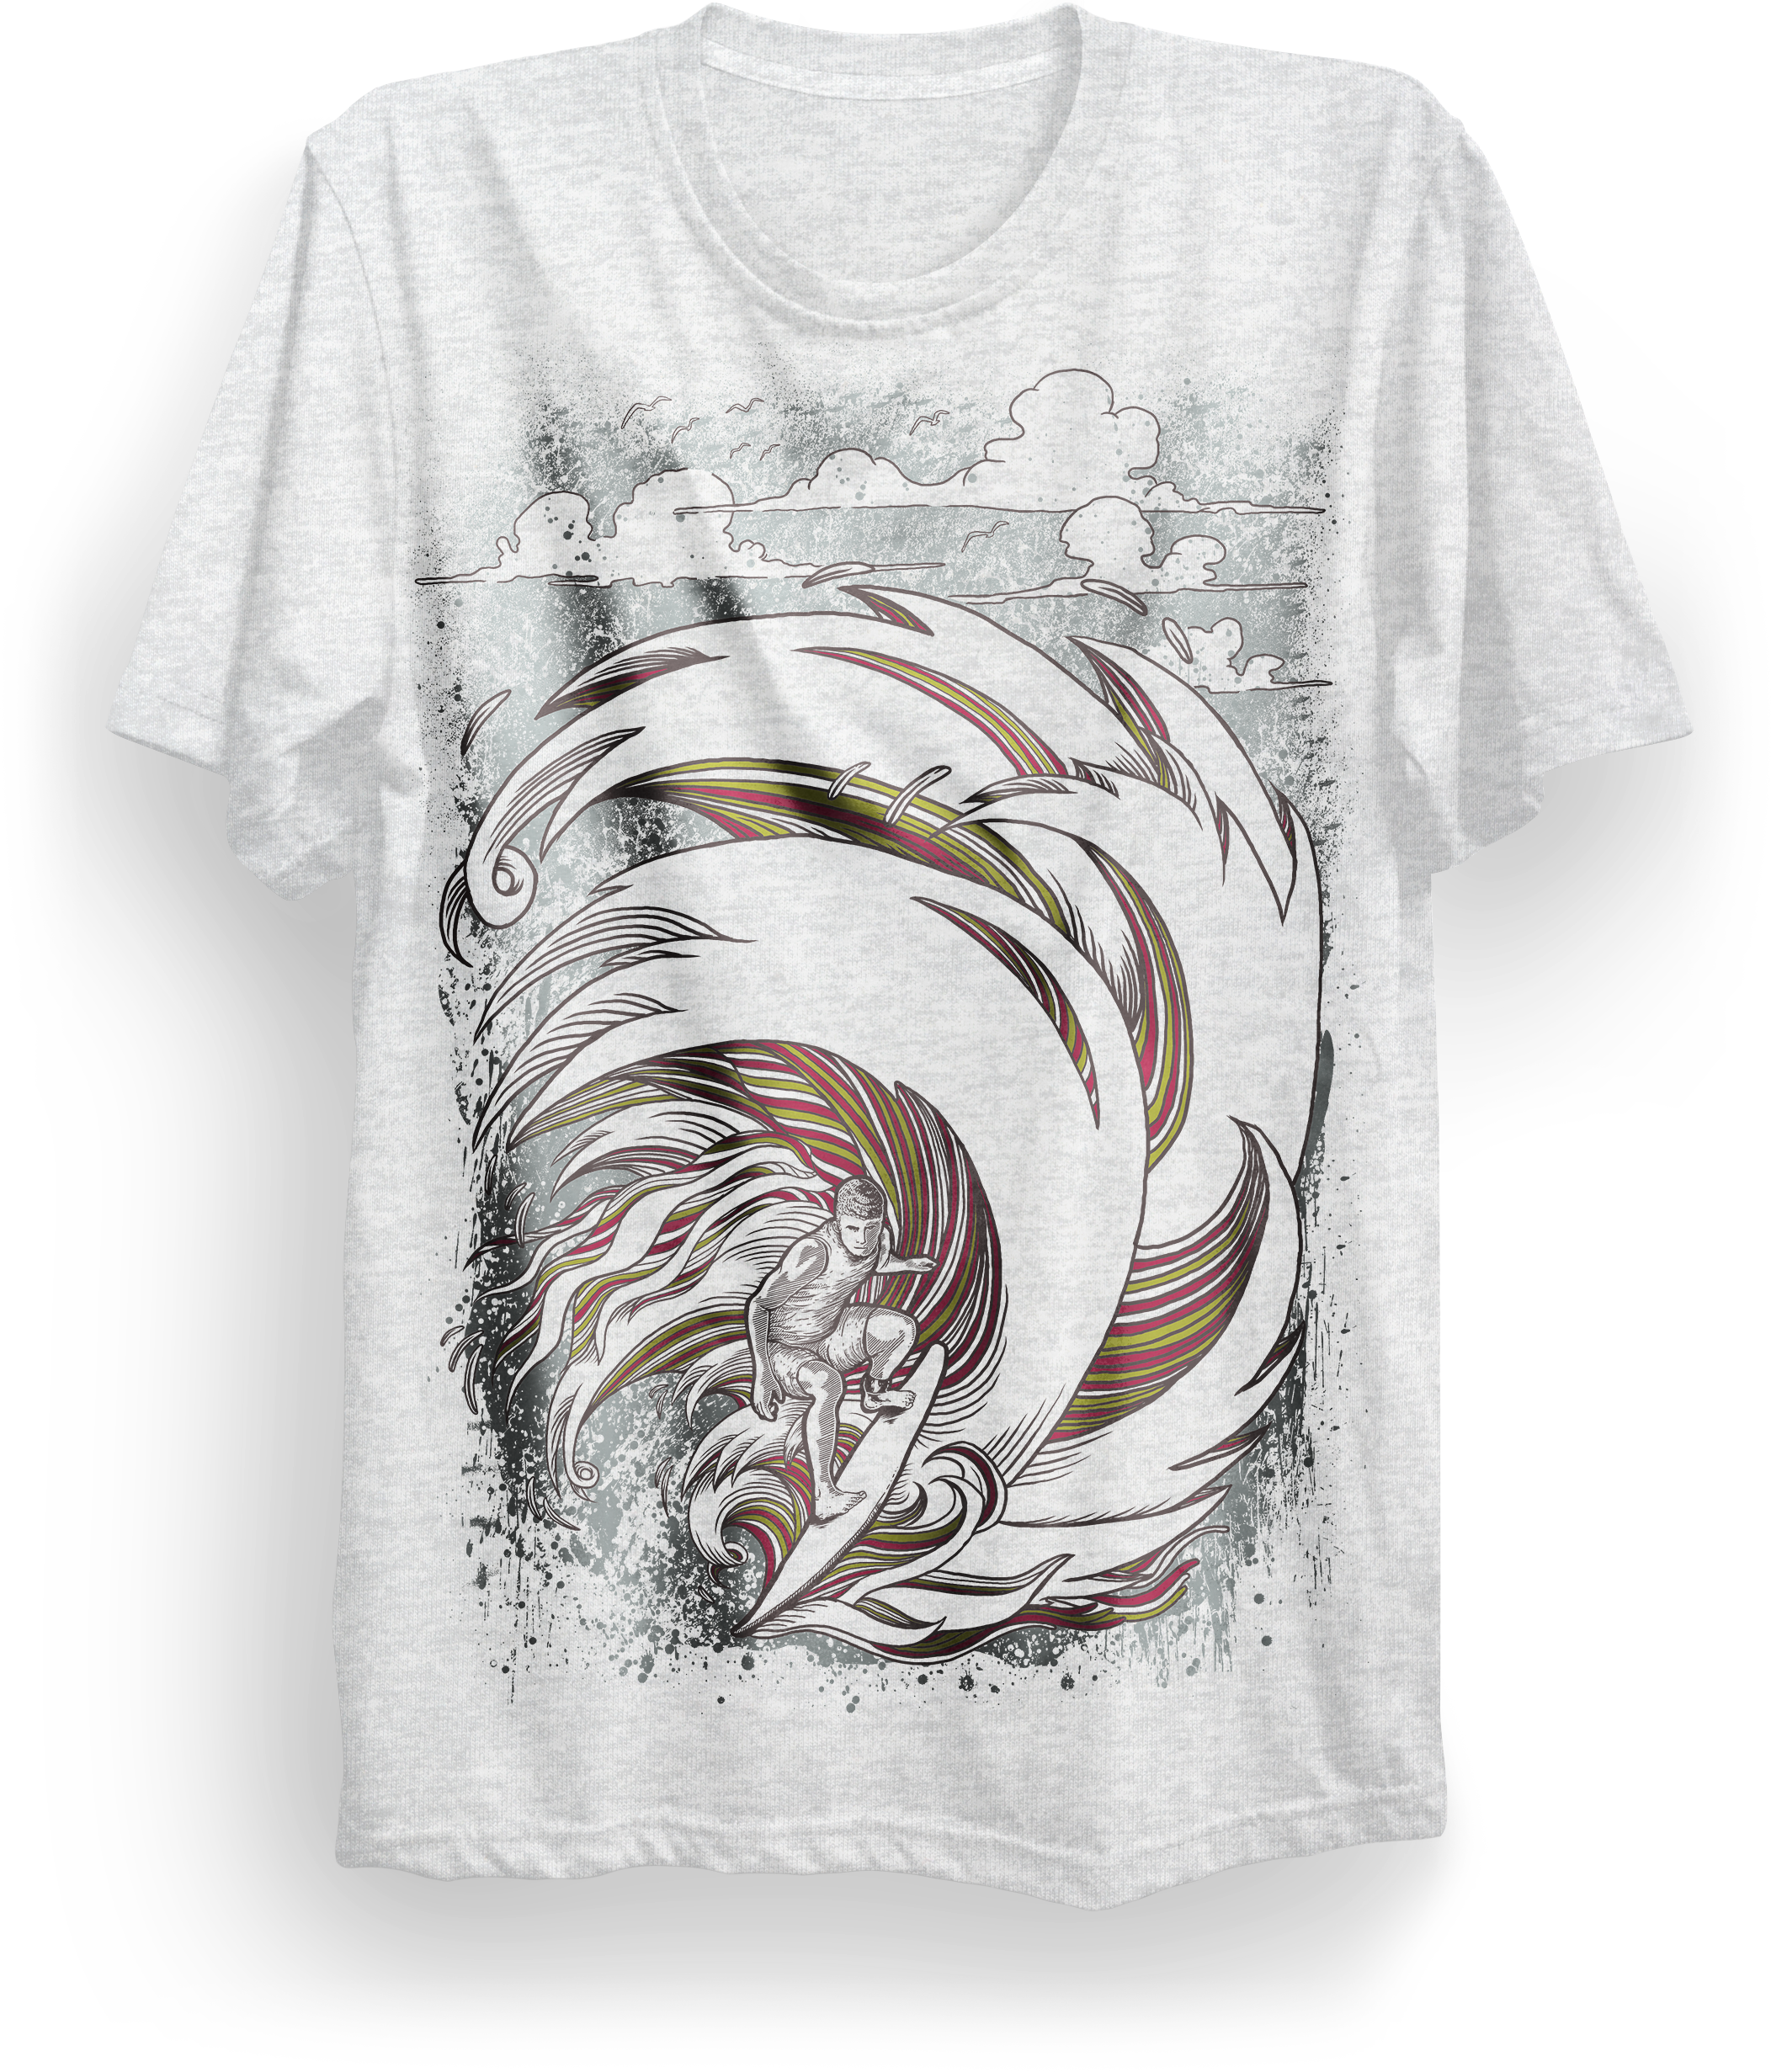 t-shirt-design door Ivanpratt